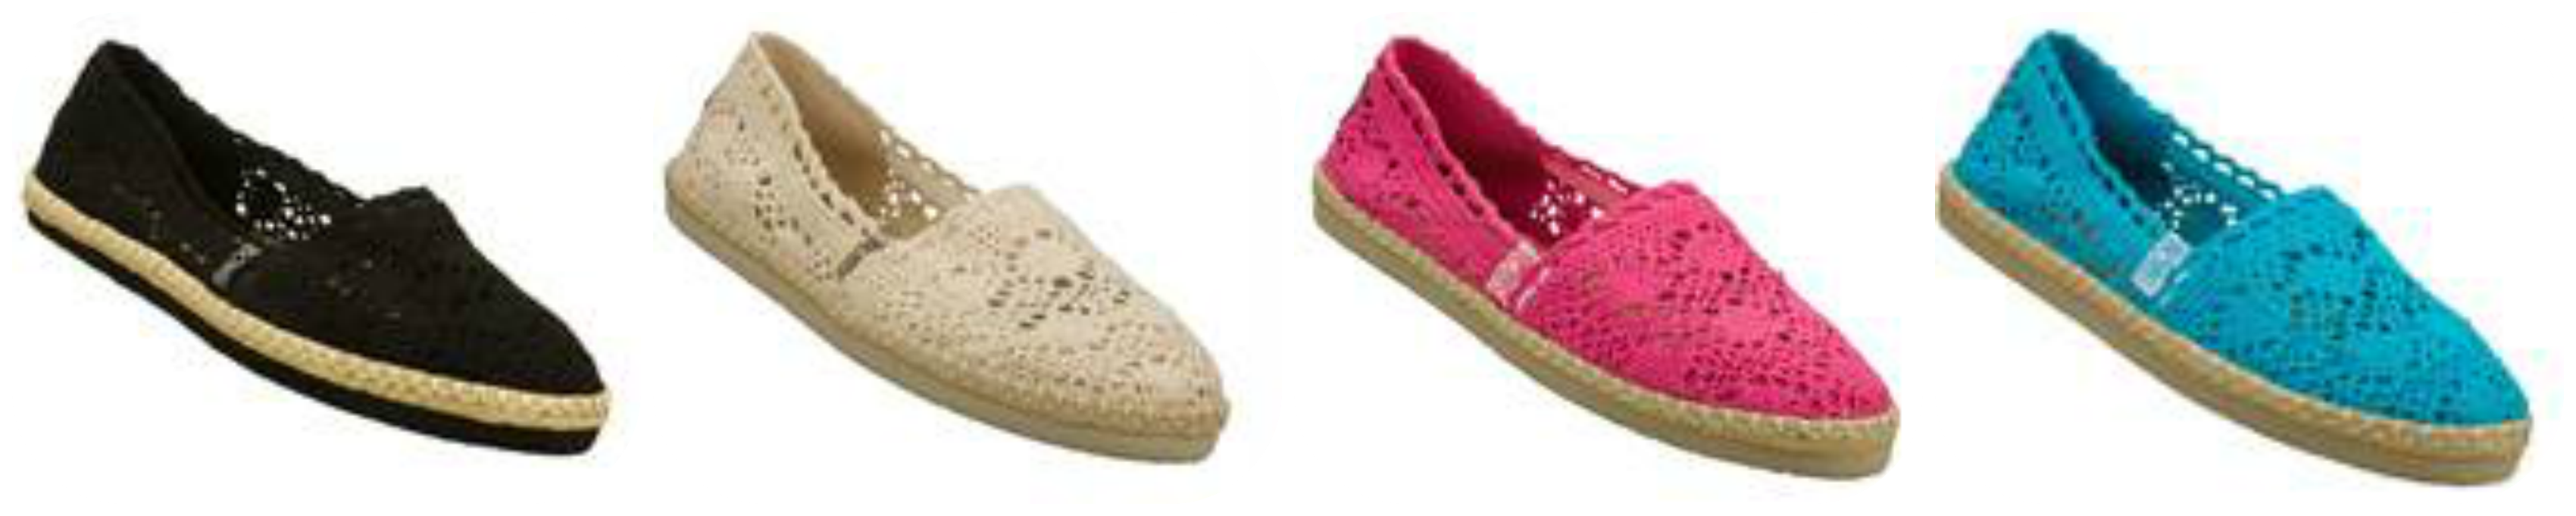 Sketchers_Bobs_colors_womens-shoes-summer.png